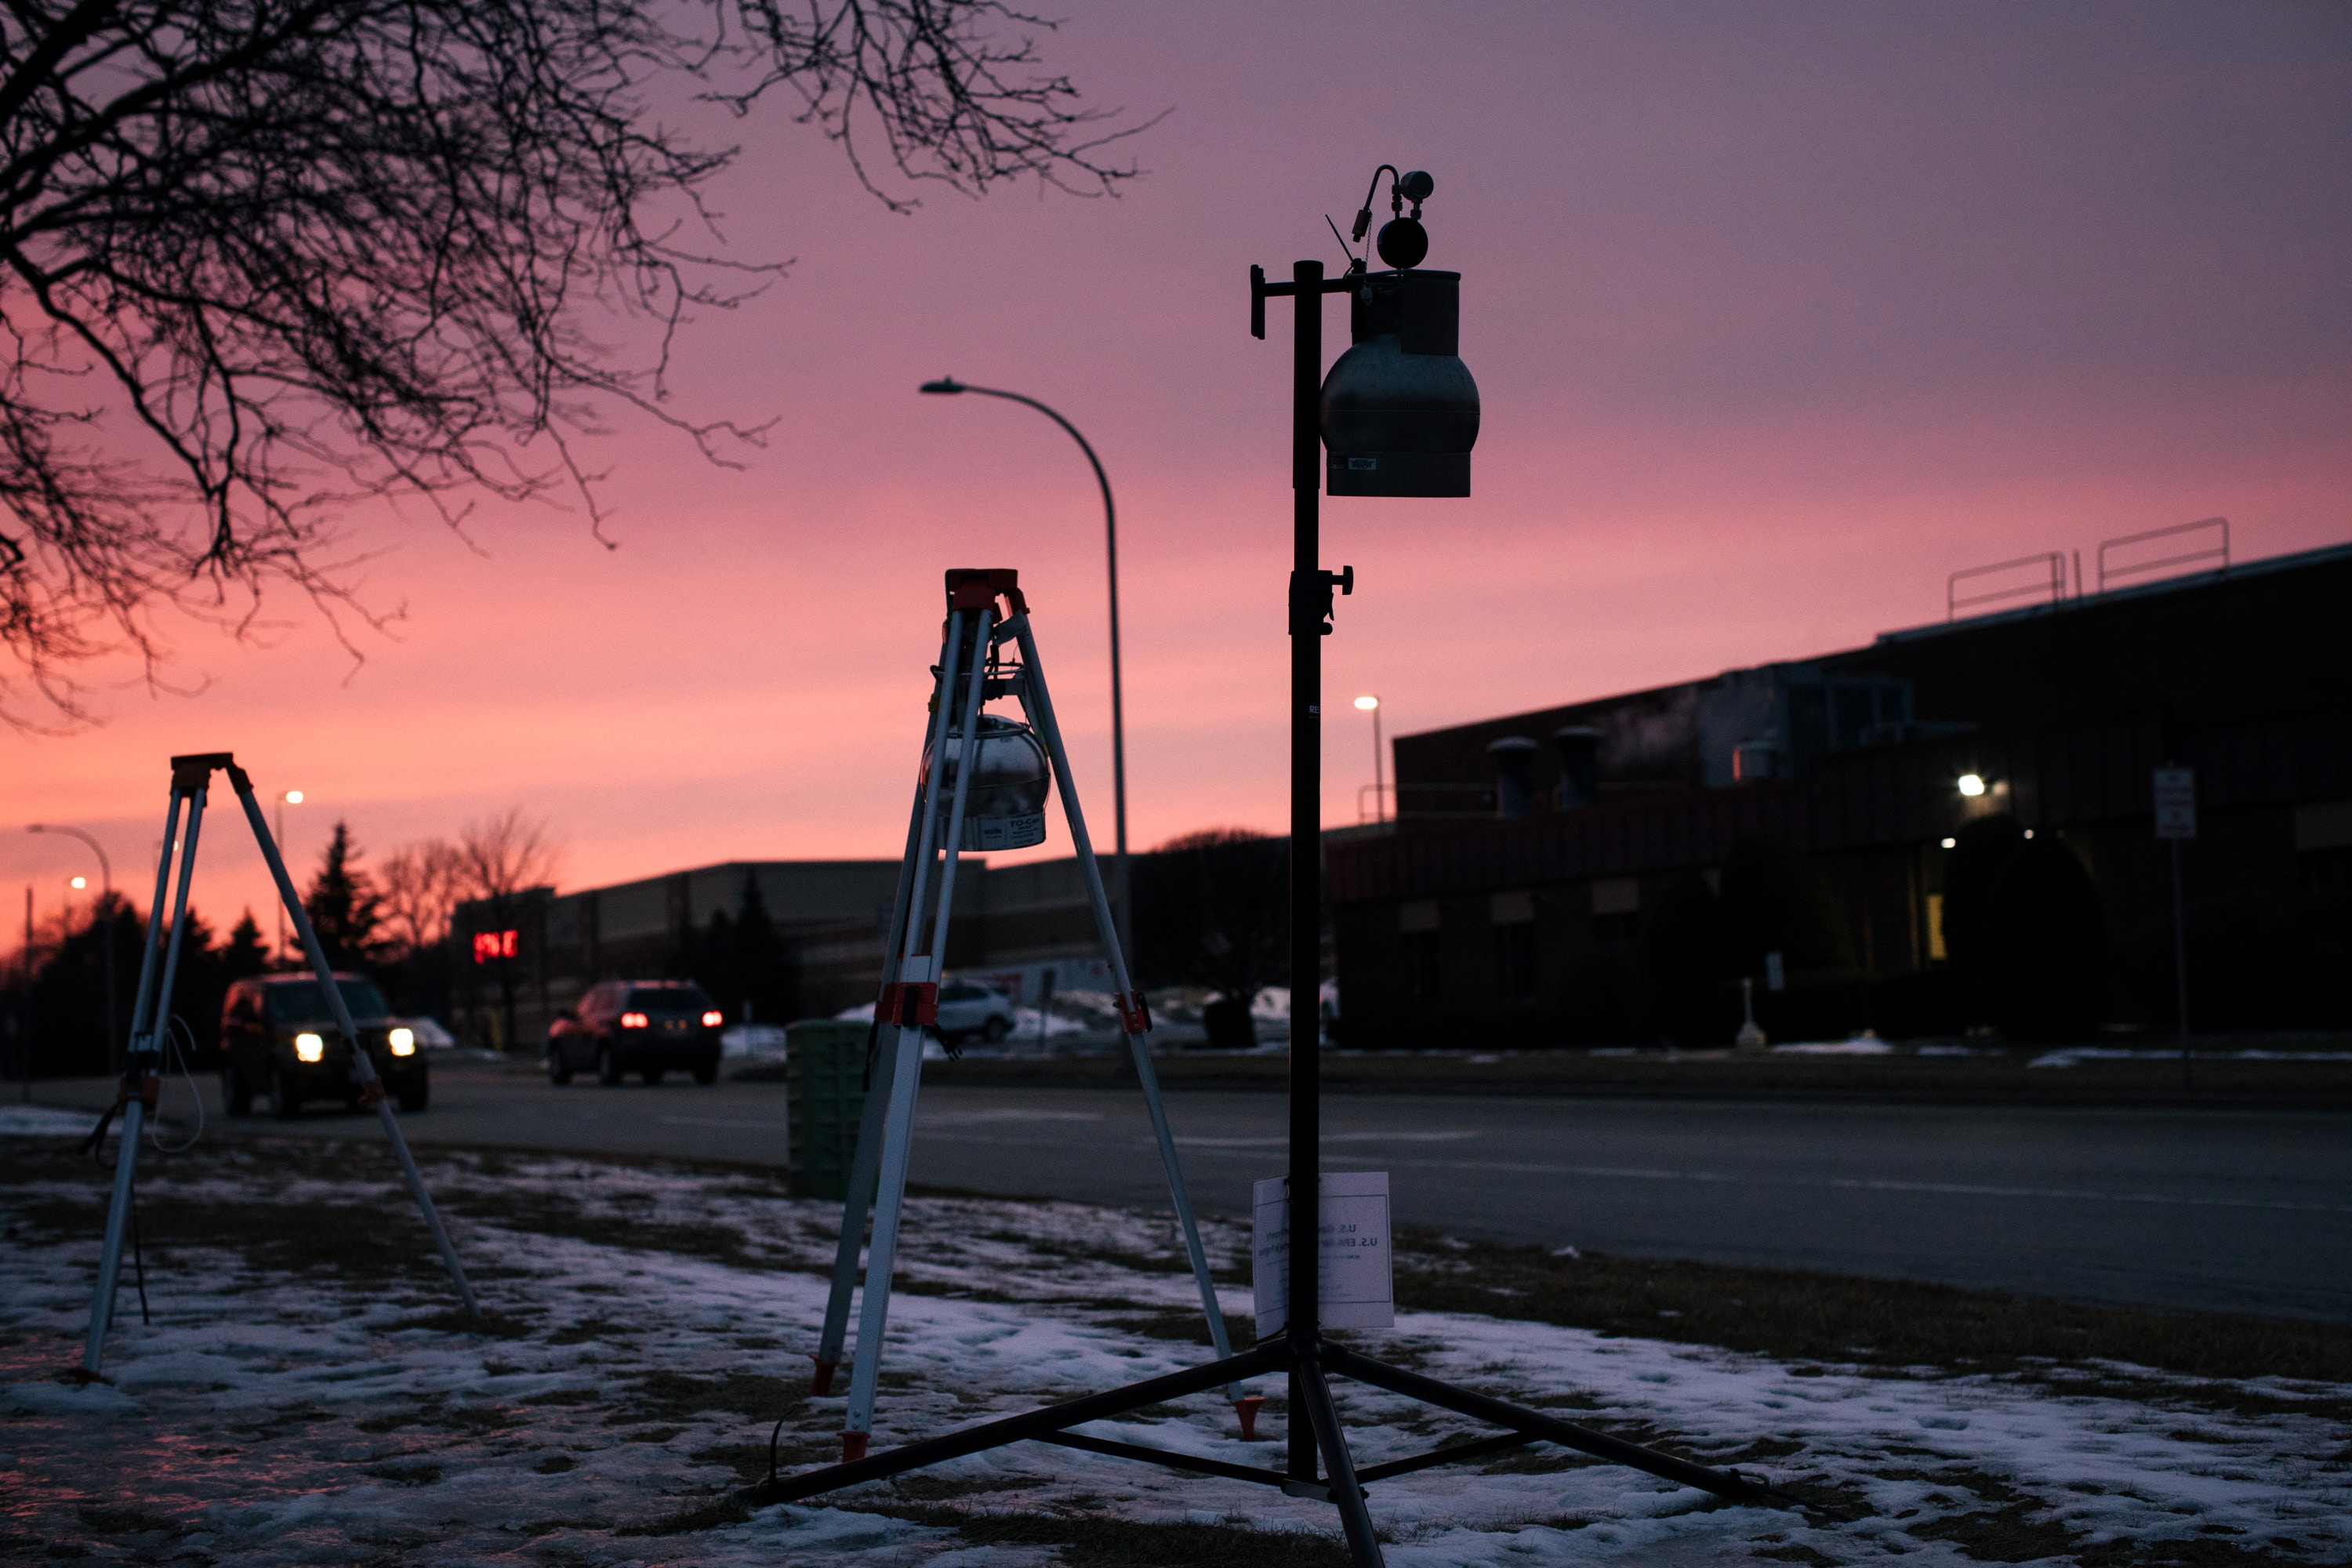 Willowbrook, Illinois -- Thursday, February 22, 2019. Air quality monitoring devices hang between the two Sterigenics buildings, one of which is seen at right, in the Willowbrook Municipal Campus. Sterigenics has been emitting a carcinogenic chemical called ethylene oxide.CREDIT: Alyssa Schukar for The Intercept